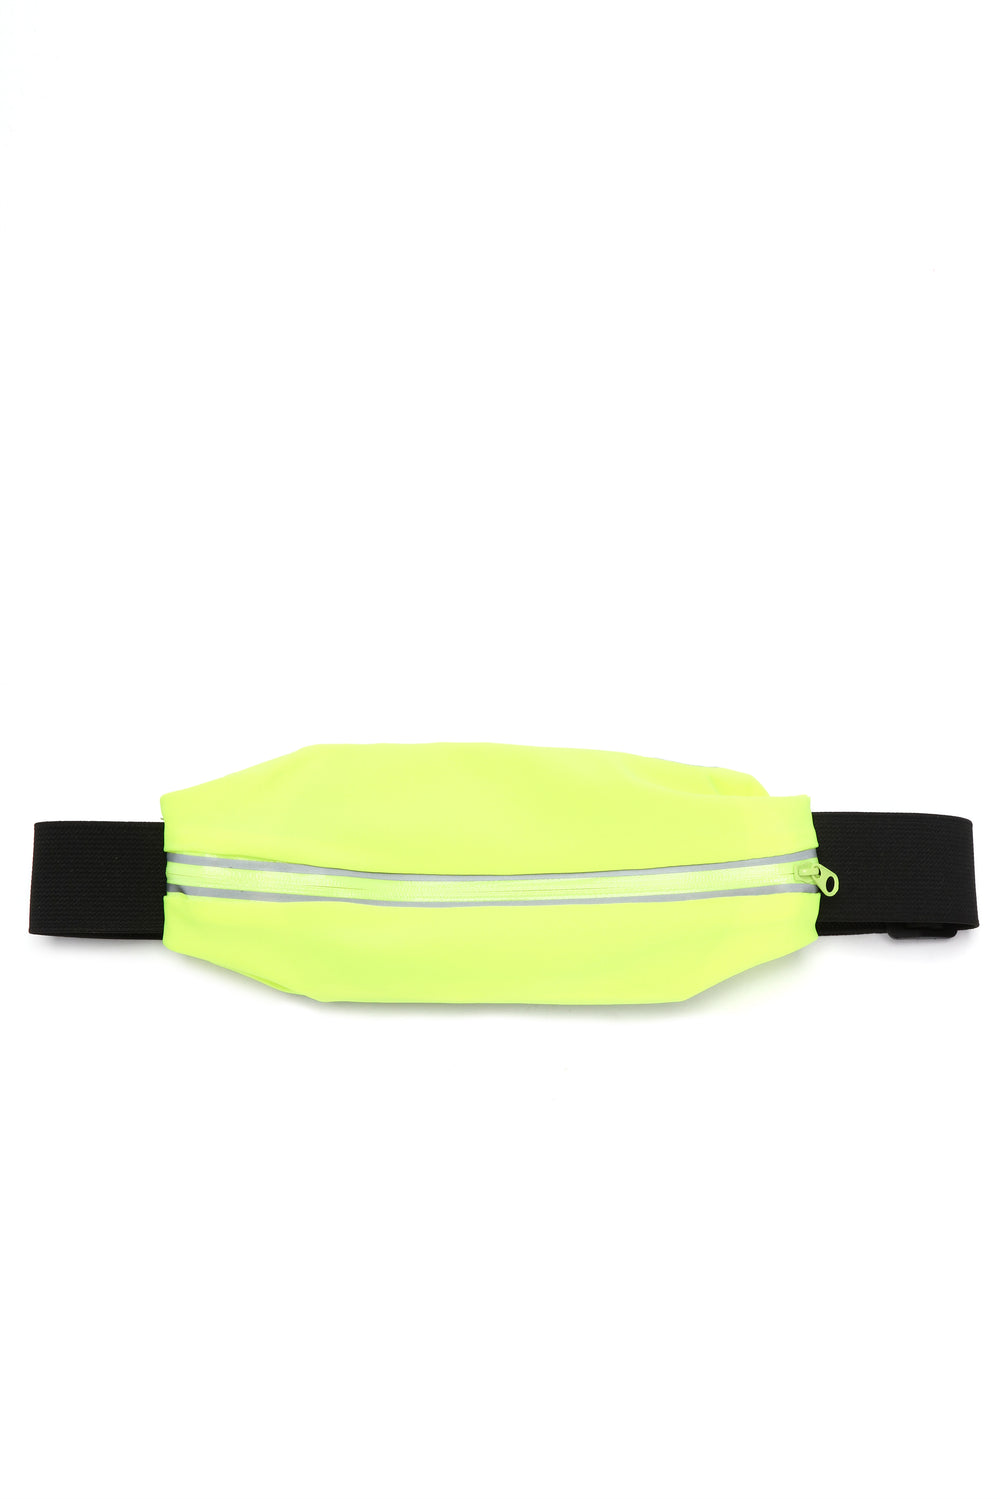 Work It Out Fanny Pack - Green